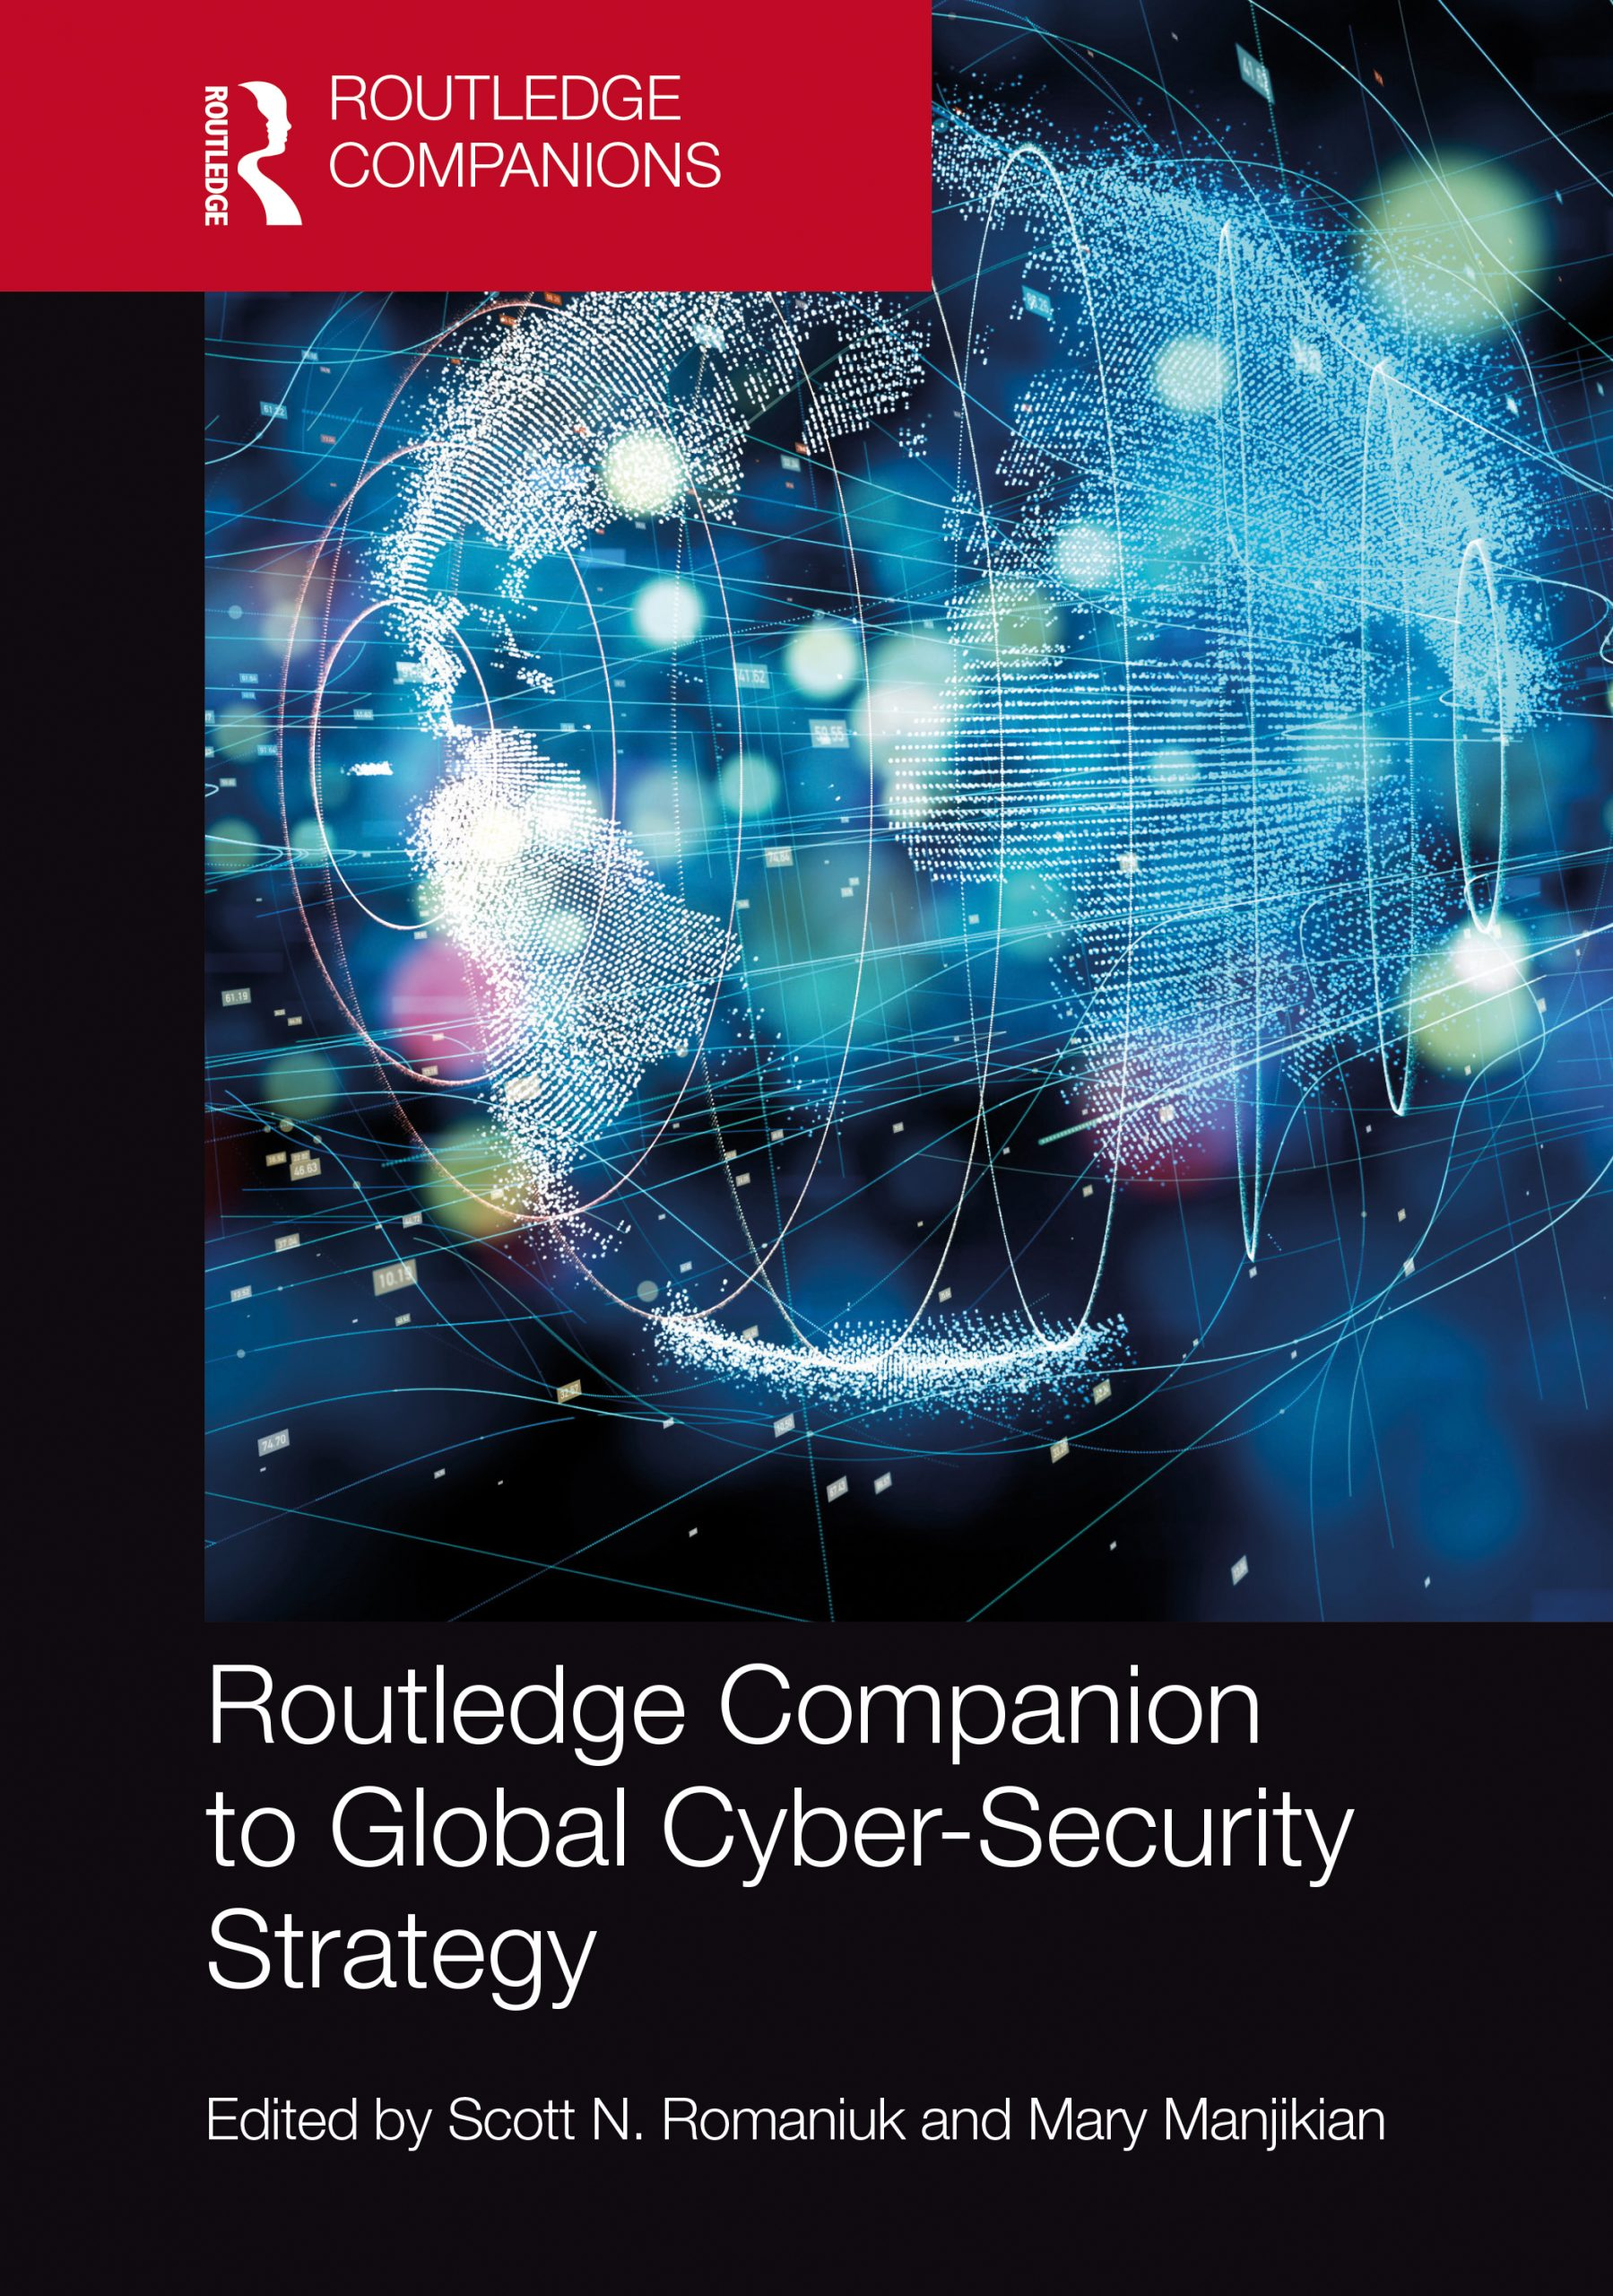 Routledge Companion Global Cyber Security Strategy